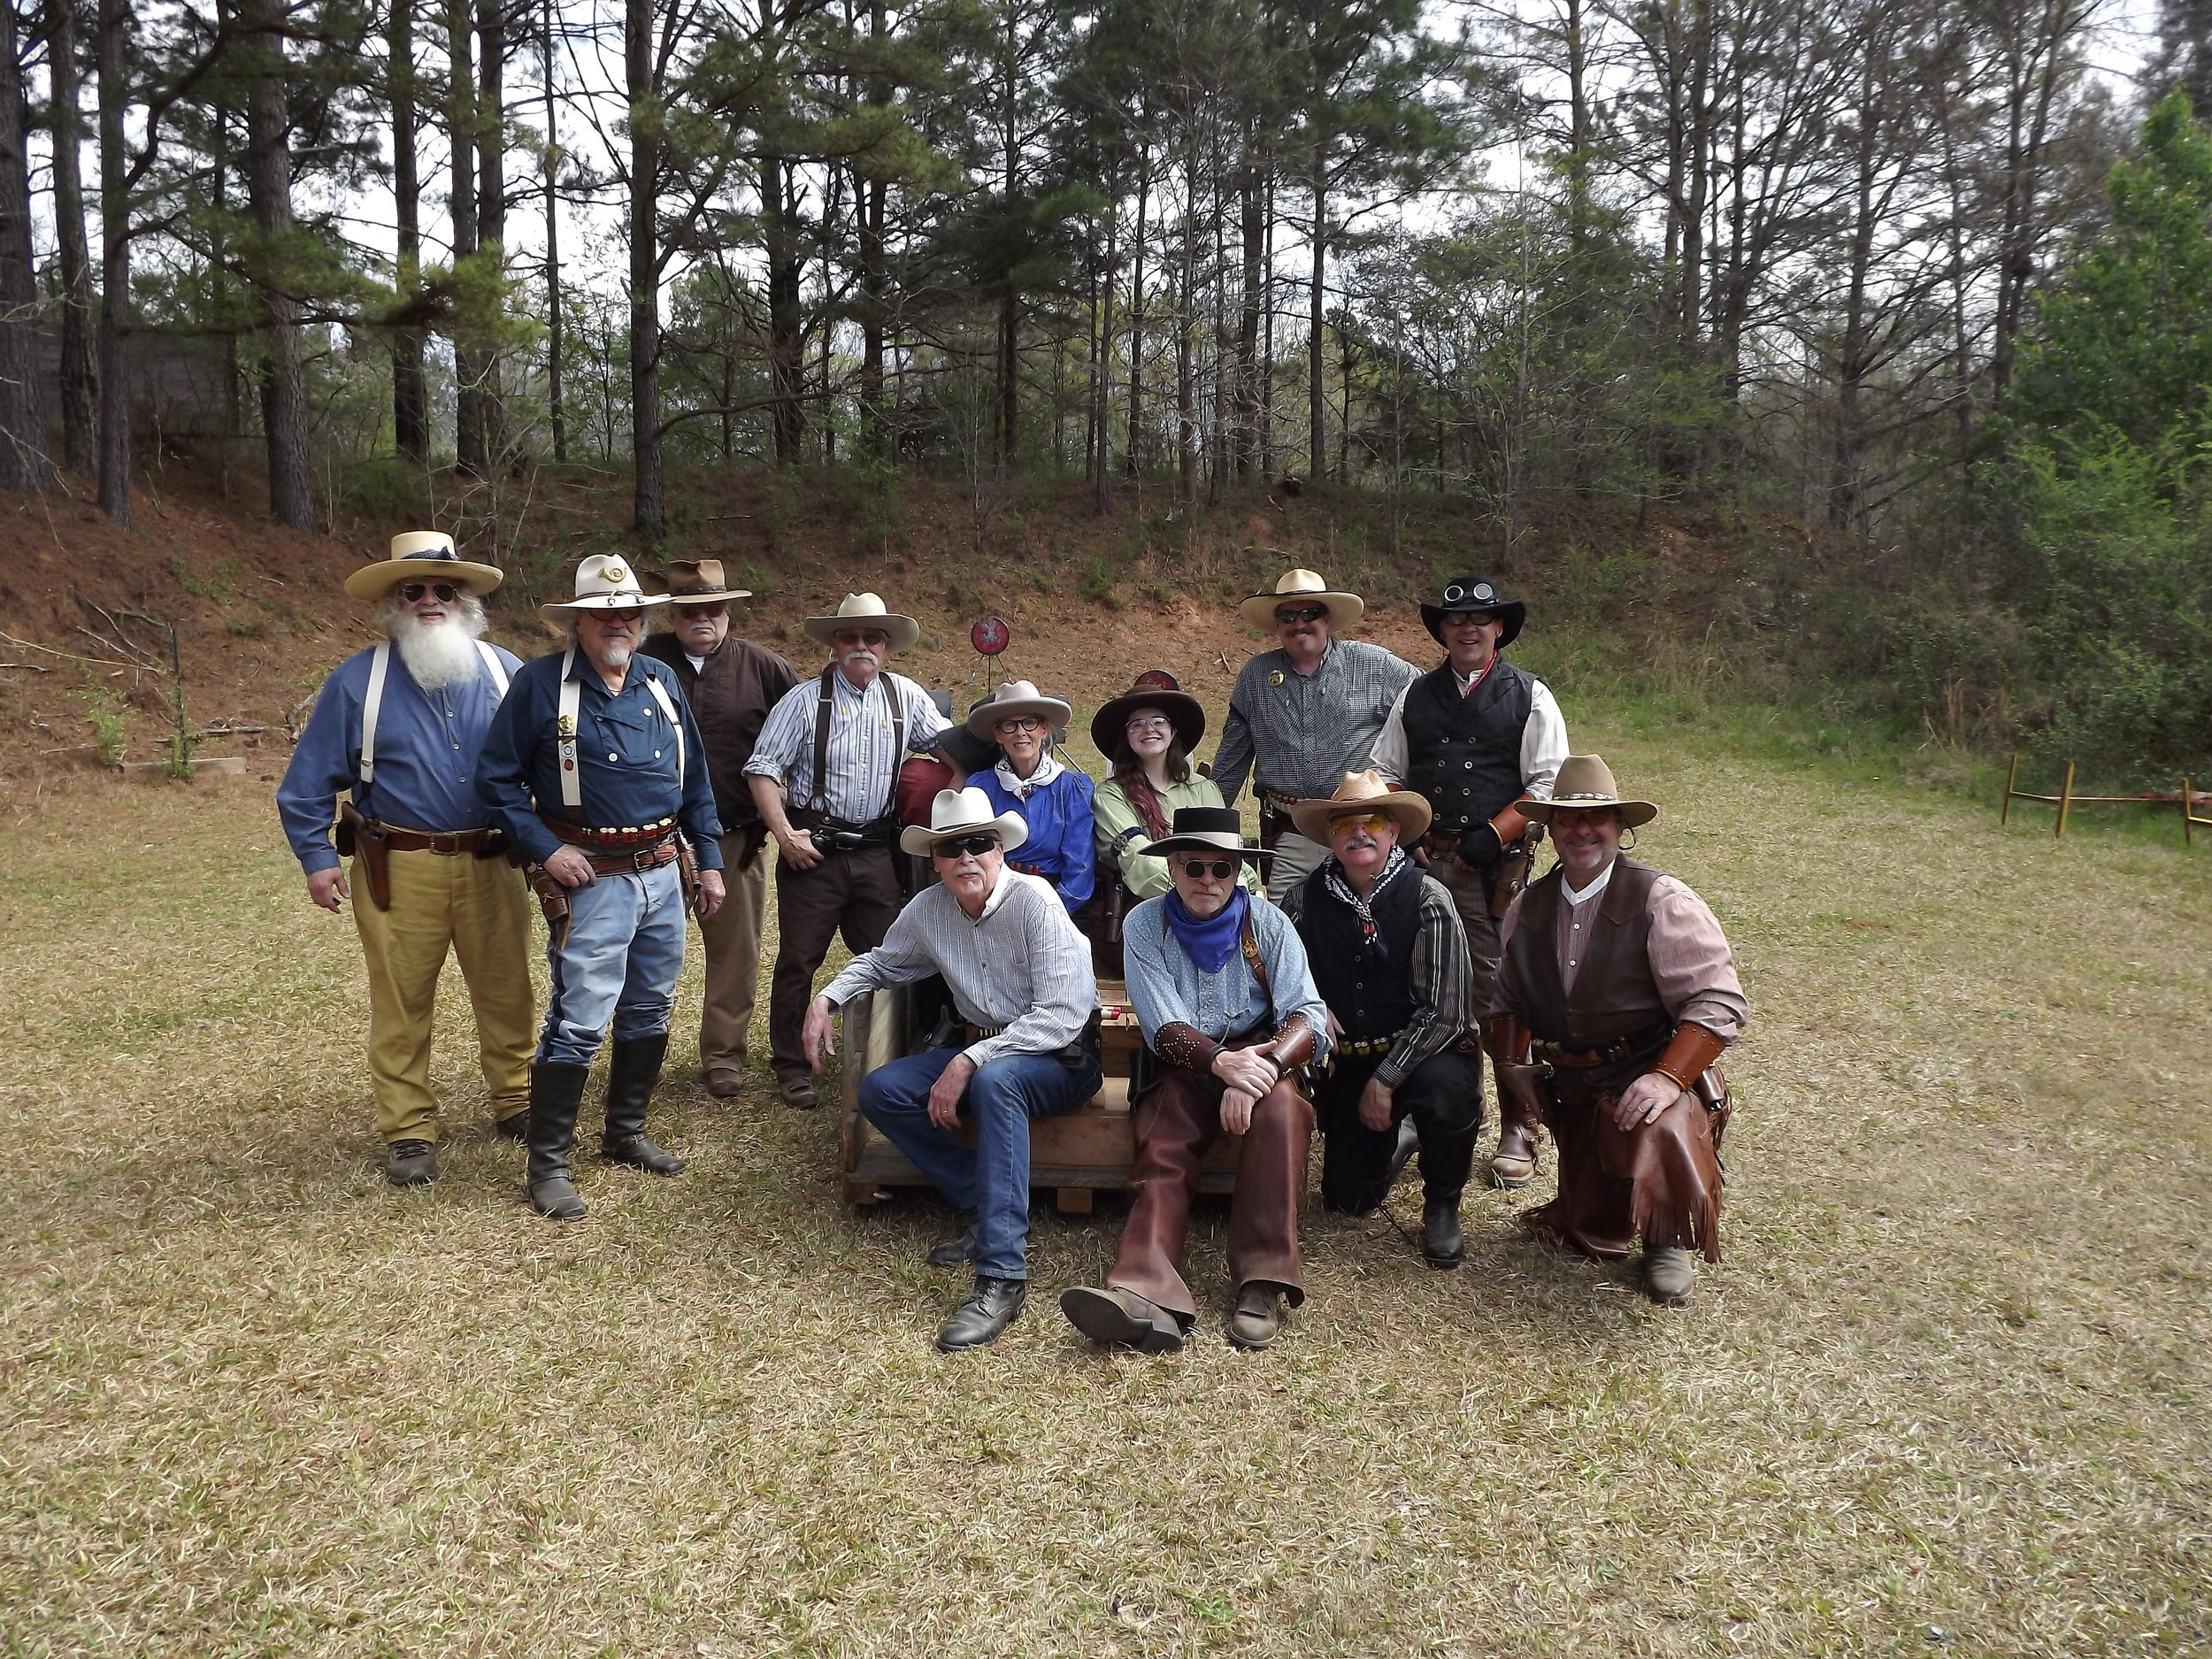 Front: Ozark Azz, Blue Speirman, Marshal Ruger, Schofield Twin. Back: Steamboat, Major Bill, Dances with Pitbulls, Shorty Butte, Maggie Darlin, Raindrop Renegade, The Rainmaker, Kantankerous Tee